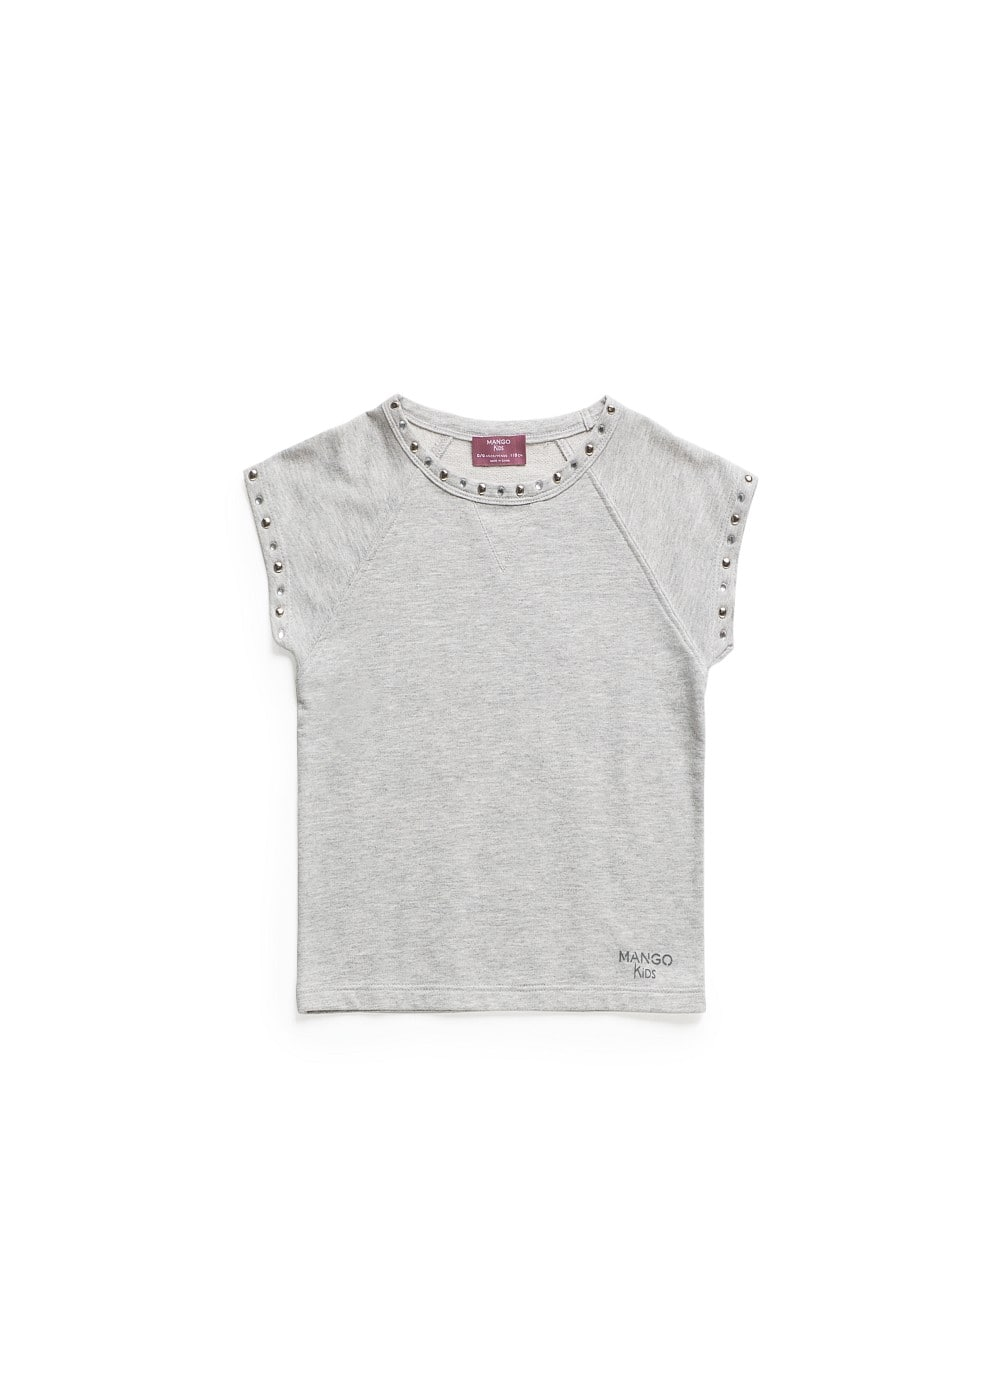 STUDDED FLECKED T-SHIRT